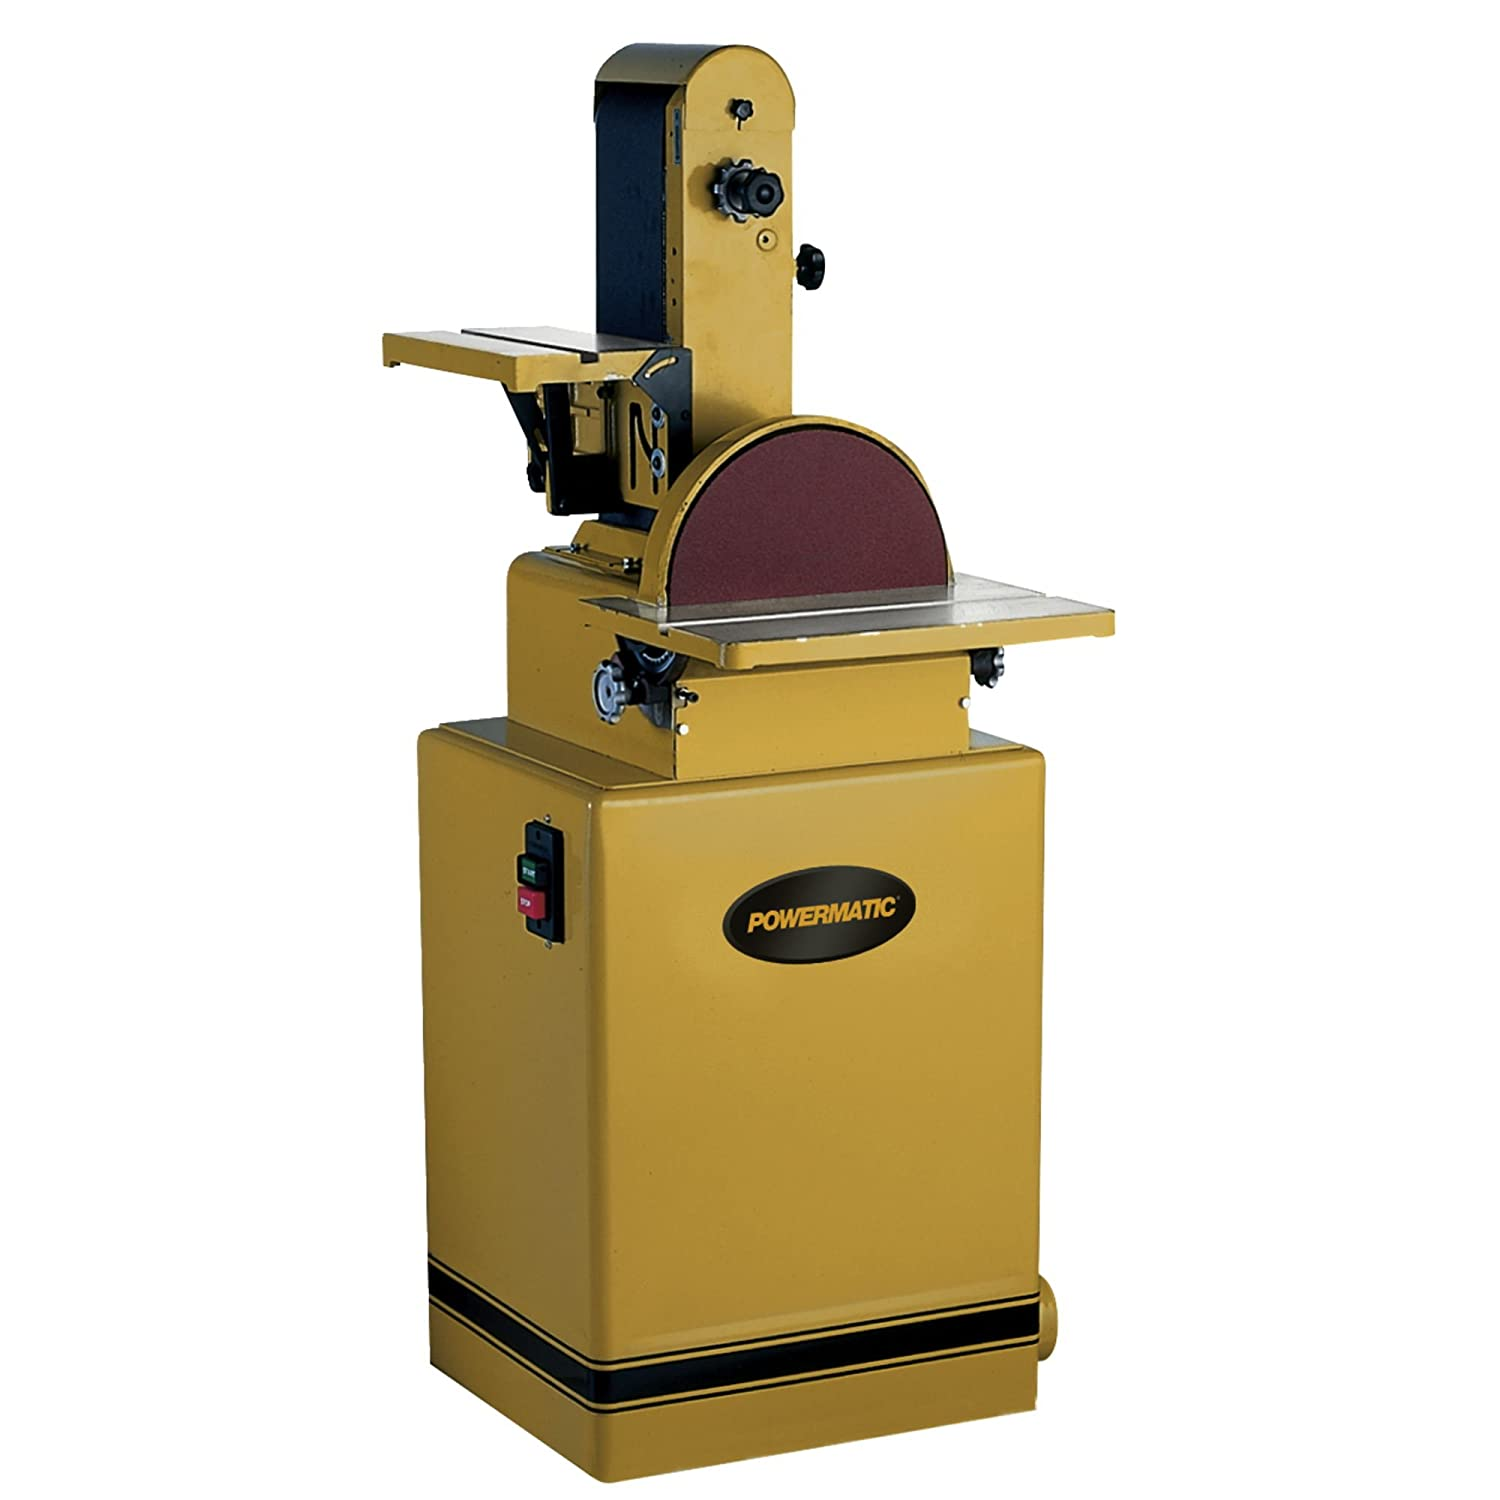 Powermatic 1791292K Model 31A 6-Inch 12-Inch 2 Horsepower Belt Disc Sander, 230 460-Volt 3 Phase